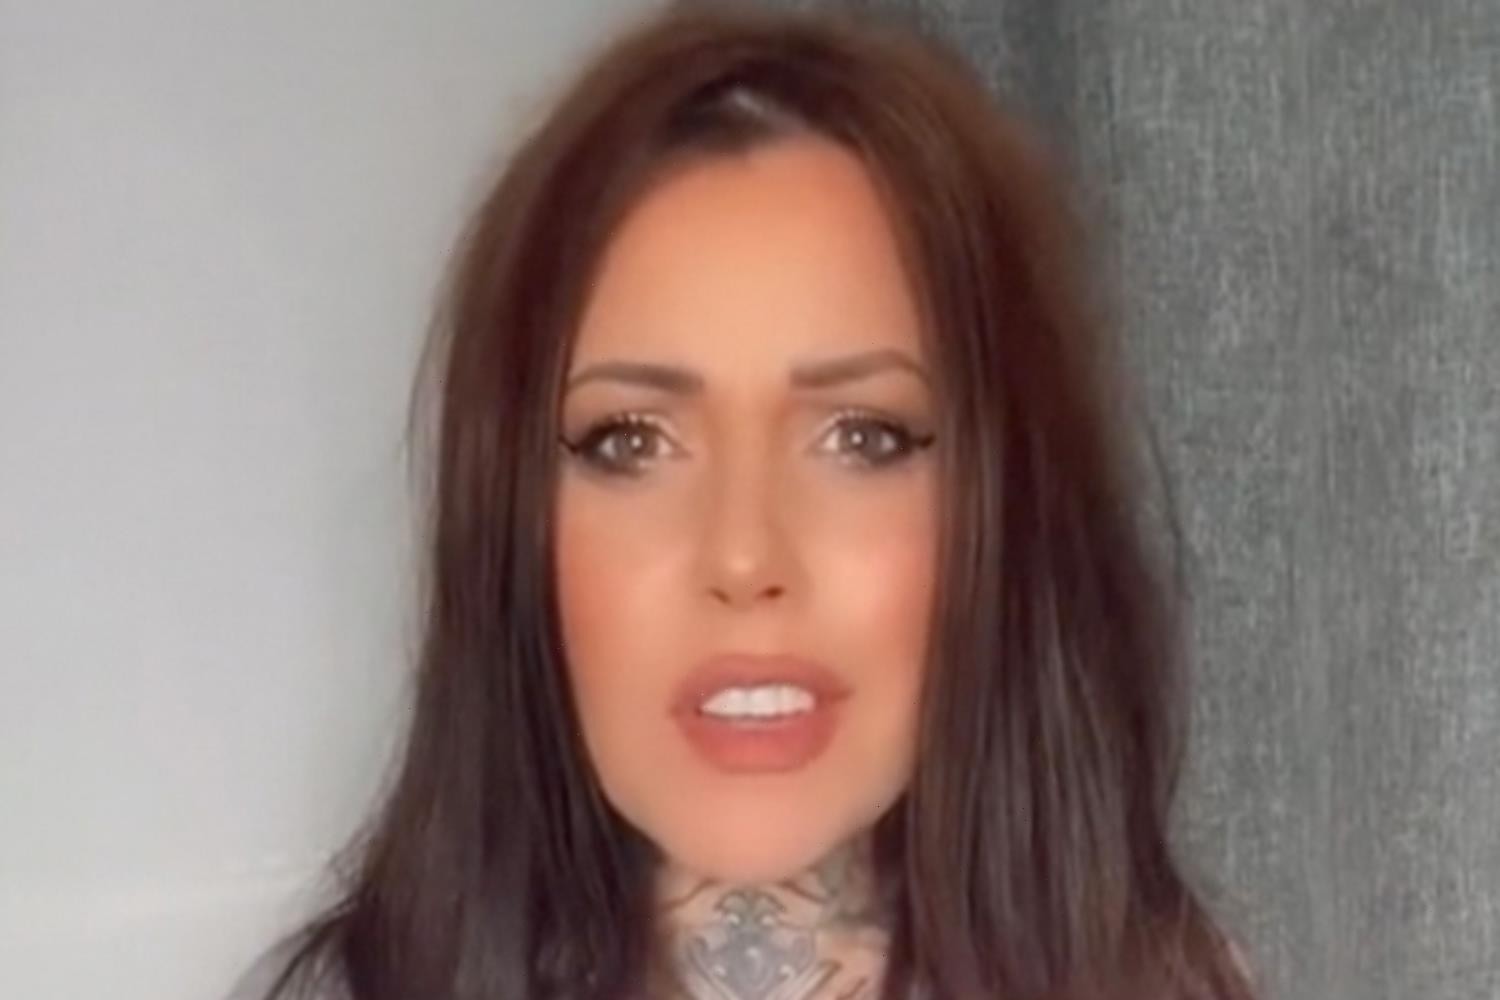 Woman pays hundreds for ram skull tattoo… then bitterly regrets it when people point out what it really looks like